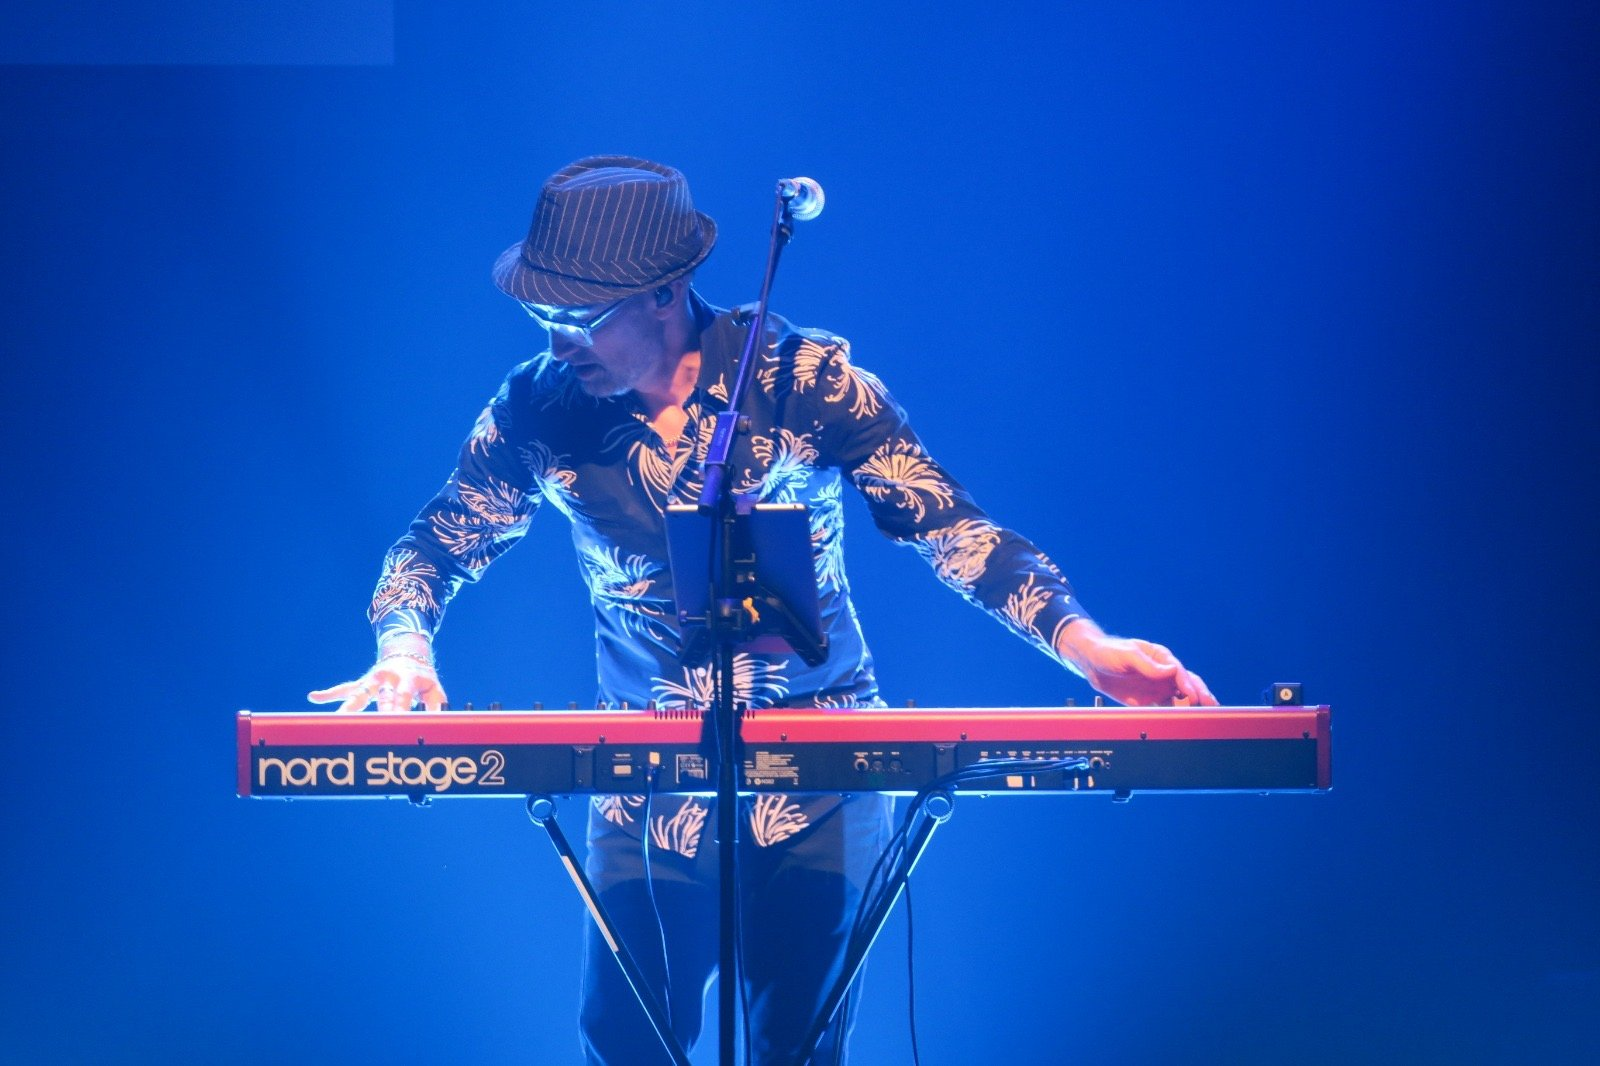 Steve Turner, keyboard player, live on stage with Live On Mars